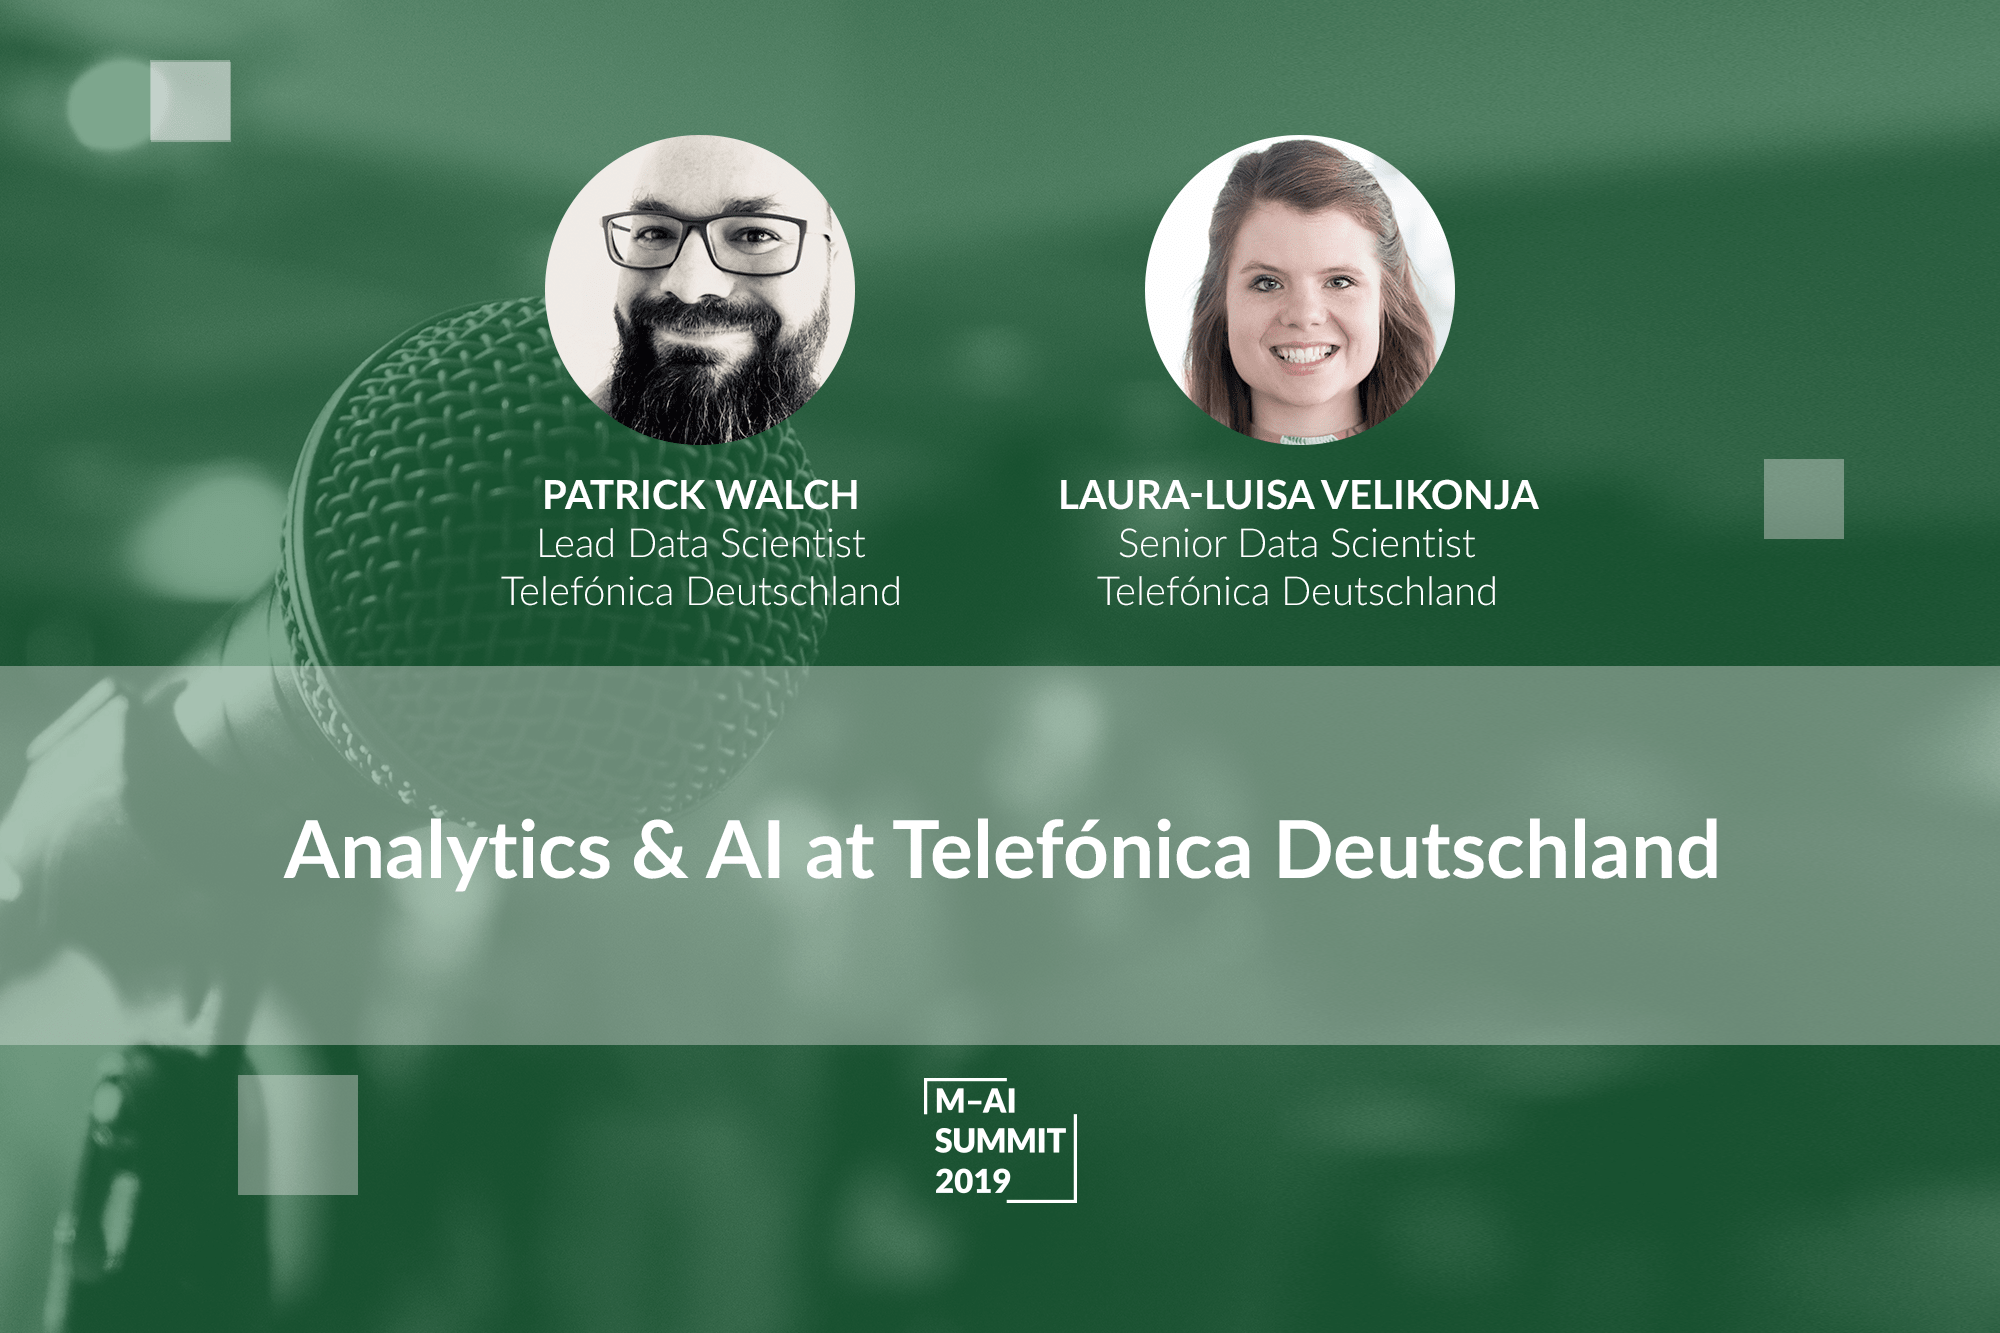 Munich AI Summit 2019. Telefónica Deutschland Team Shares Their Experience of Using AI & Analytics